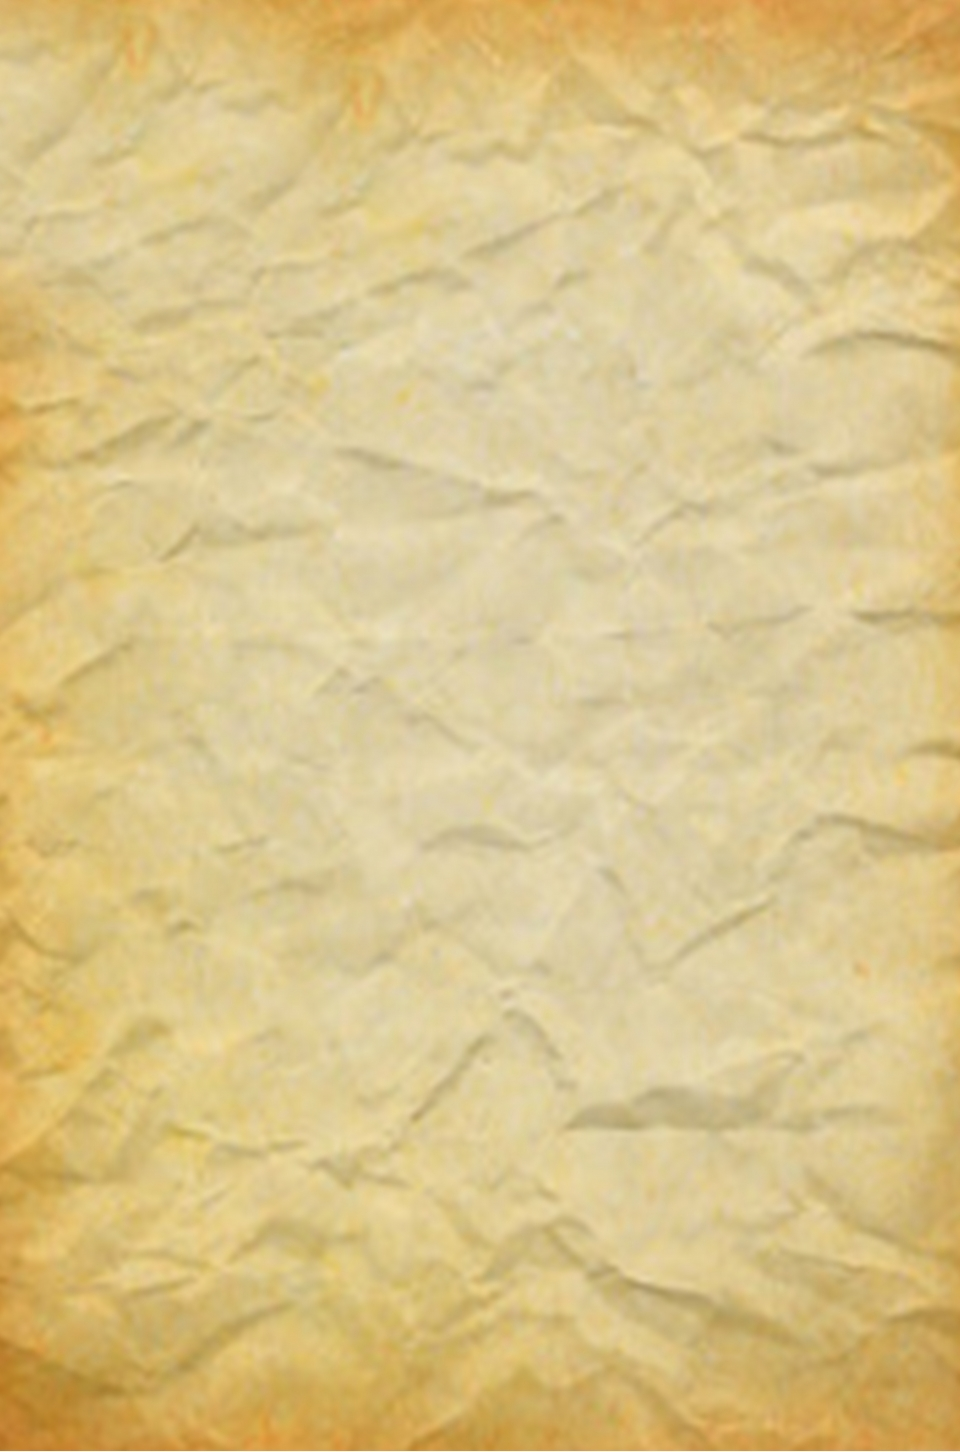 Background Kertas Png : background, kertas, Yellow, Vintage, Kraft, Paper, Textured, Texture, Background,, Yellow,, Retro,, Background, Image, Download